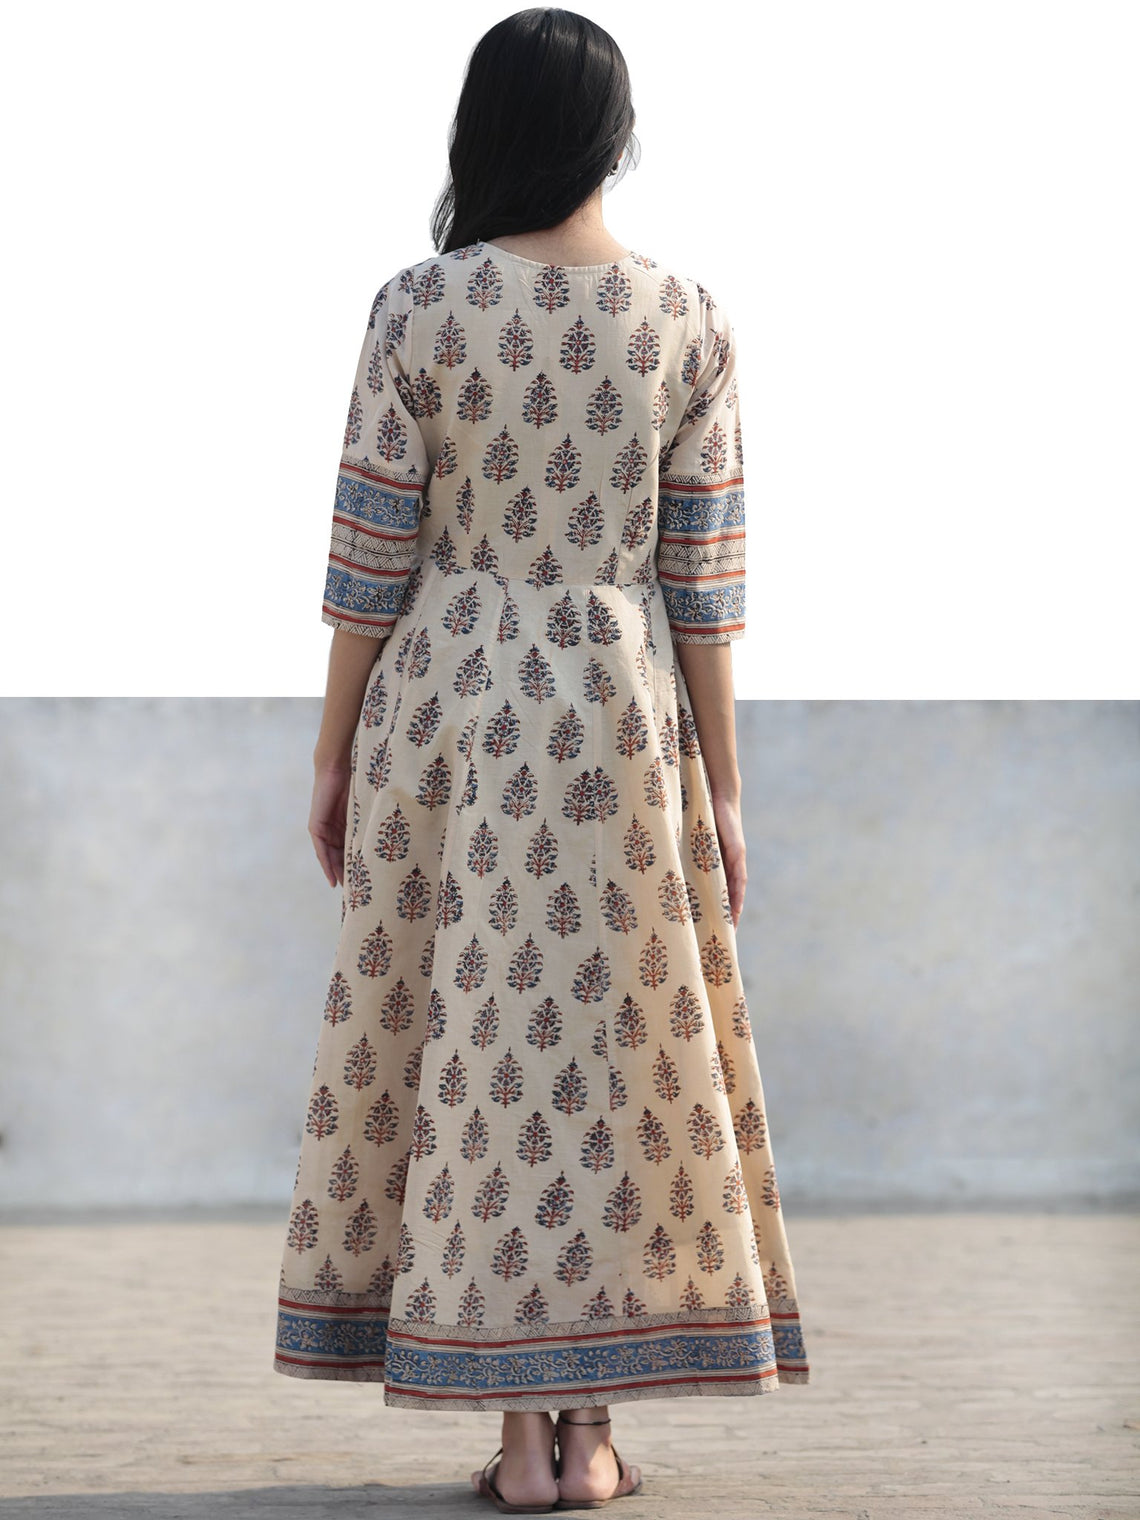 Naaz - Beige Blue Maroon Black Hand Block Printed Long Cotton Dress with Tassels- DS02F004